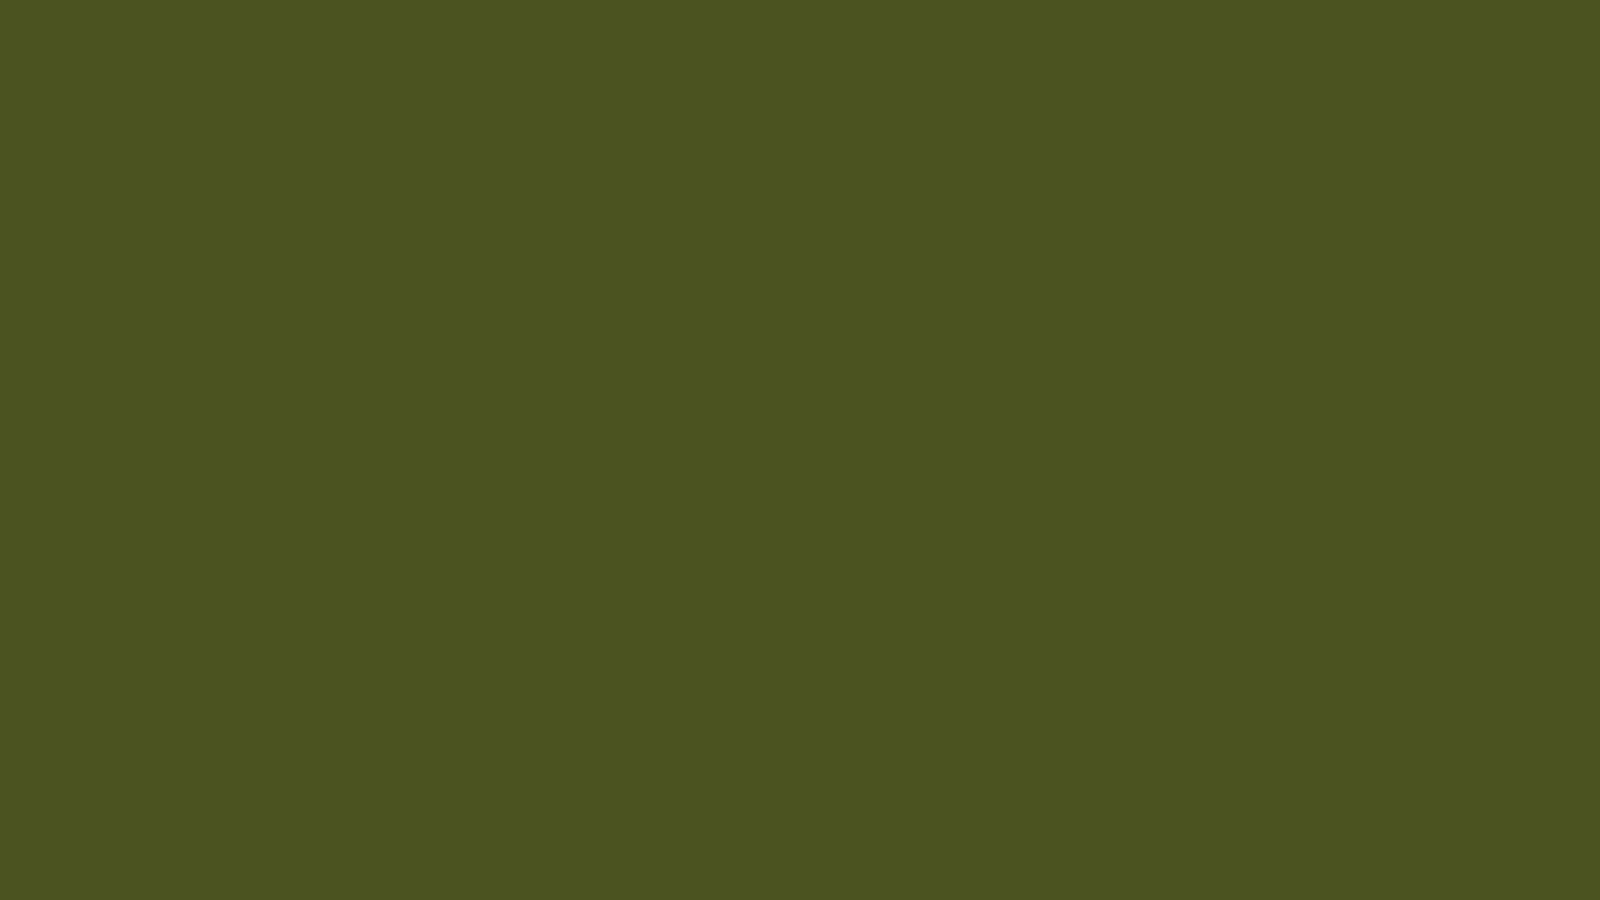 Privacy Policy >> 1600x900 Army Green Solid Color Background